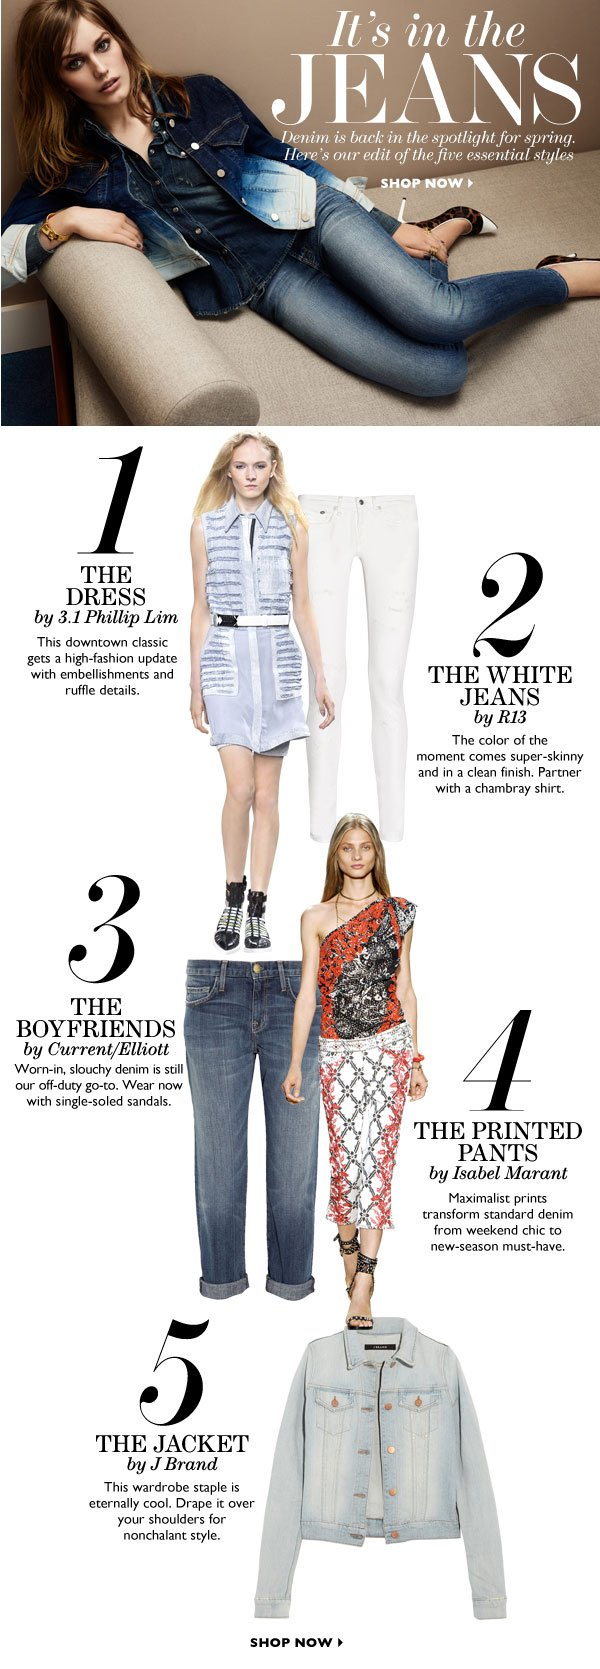 It's in the JEANS Denim is back in the spotlight for spring. Here's our edit of the five essential styles